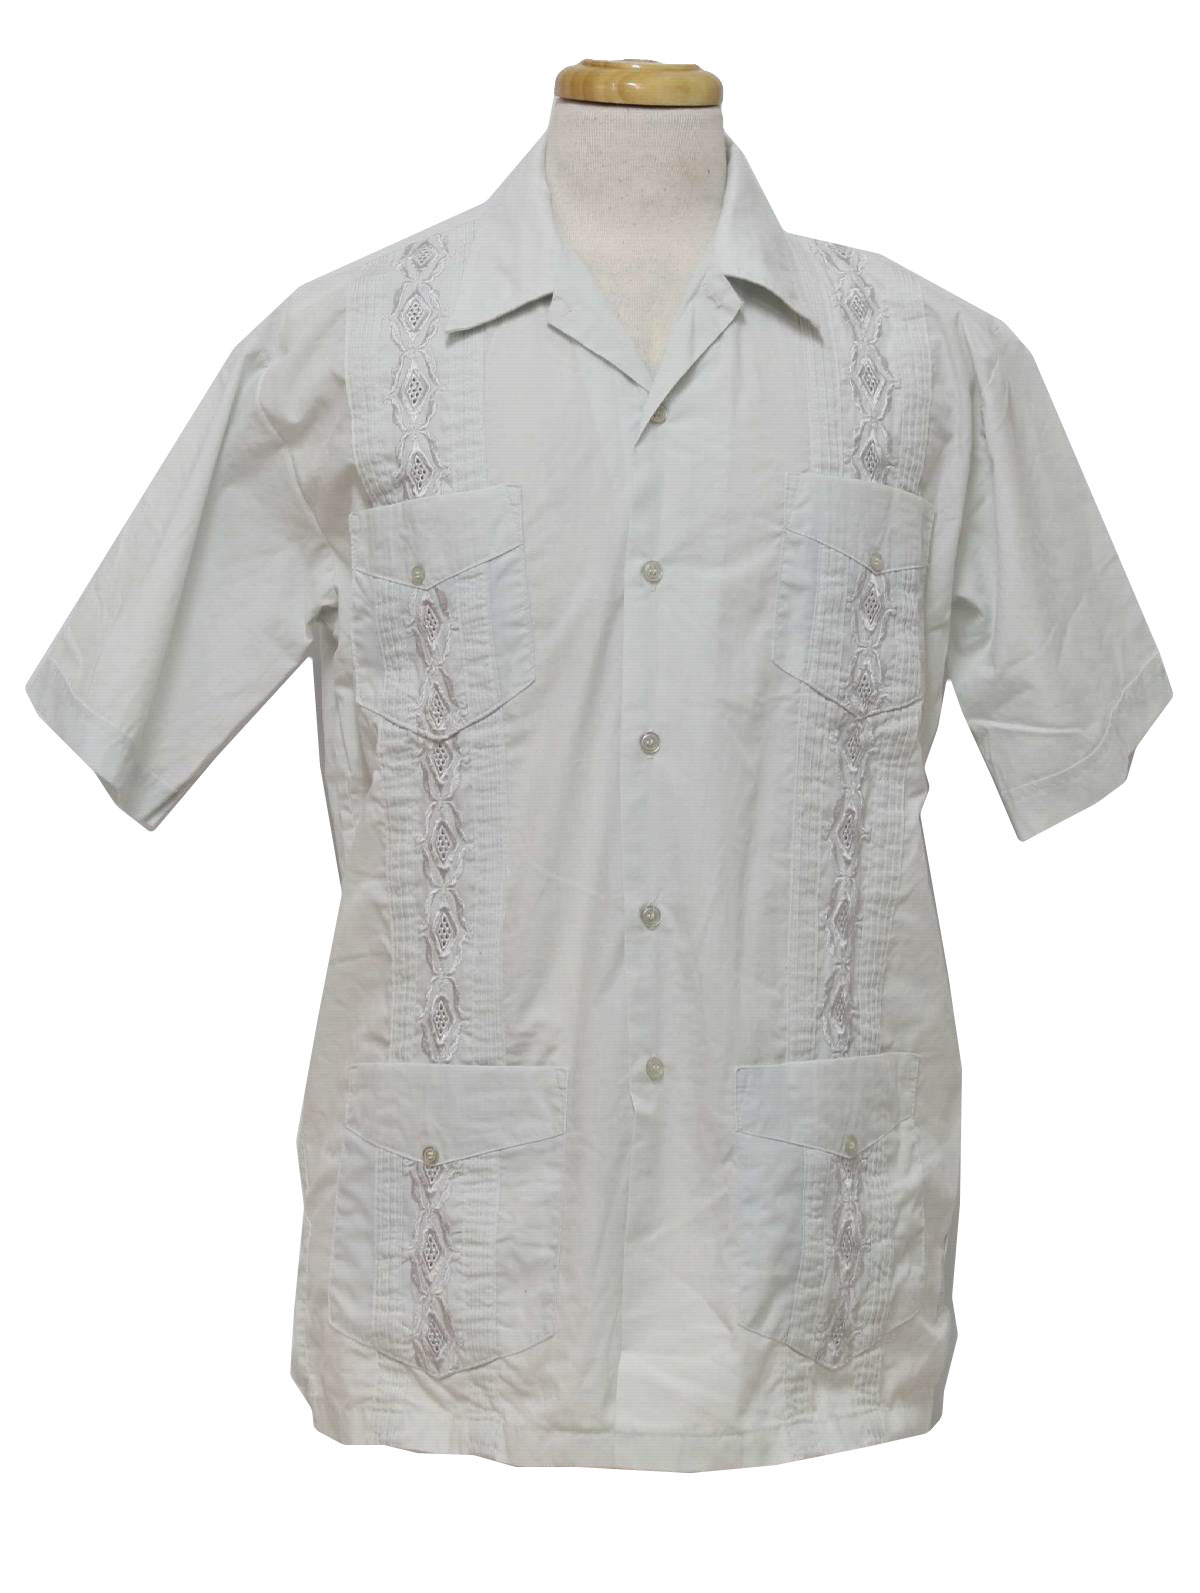 Vintage 80s Guayabera Shirt A Trip To New York Mens Very Pale Celedon Cotton And Polyester Blend Short Sleeve Or Mexican Wedding